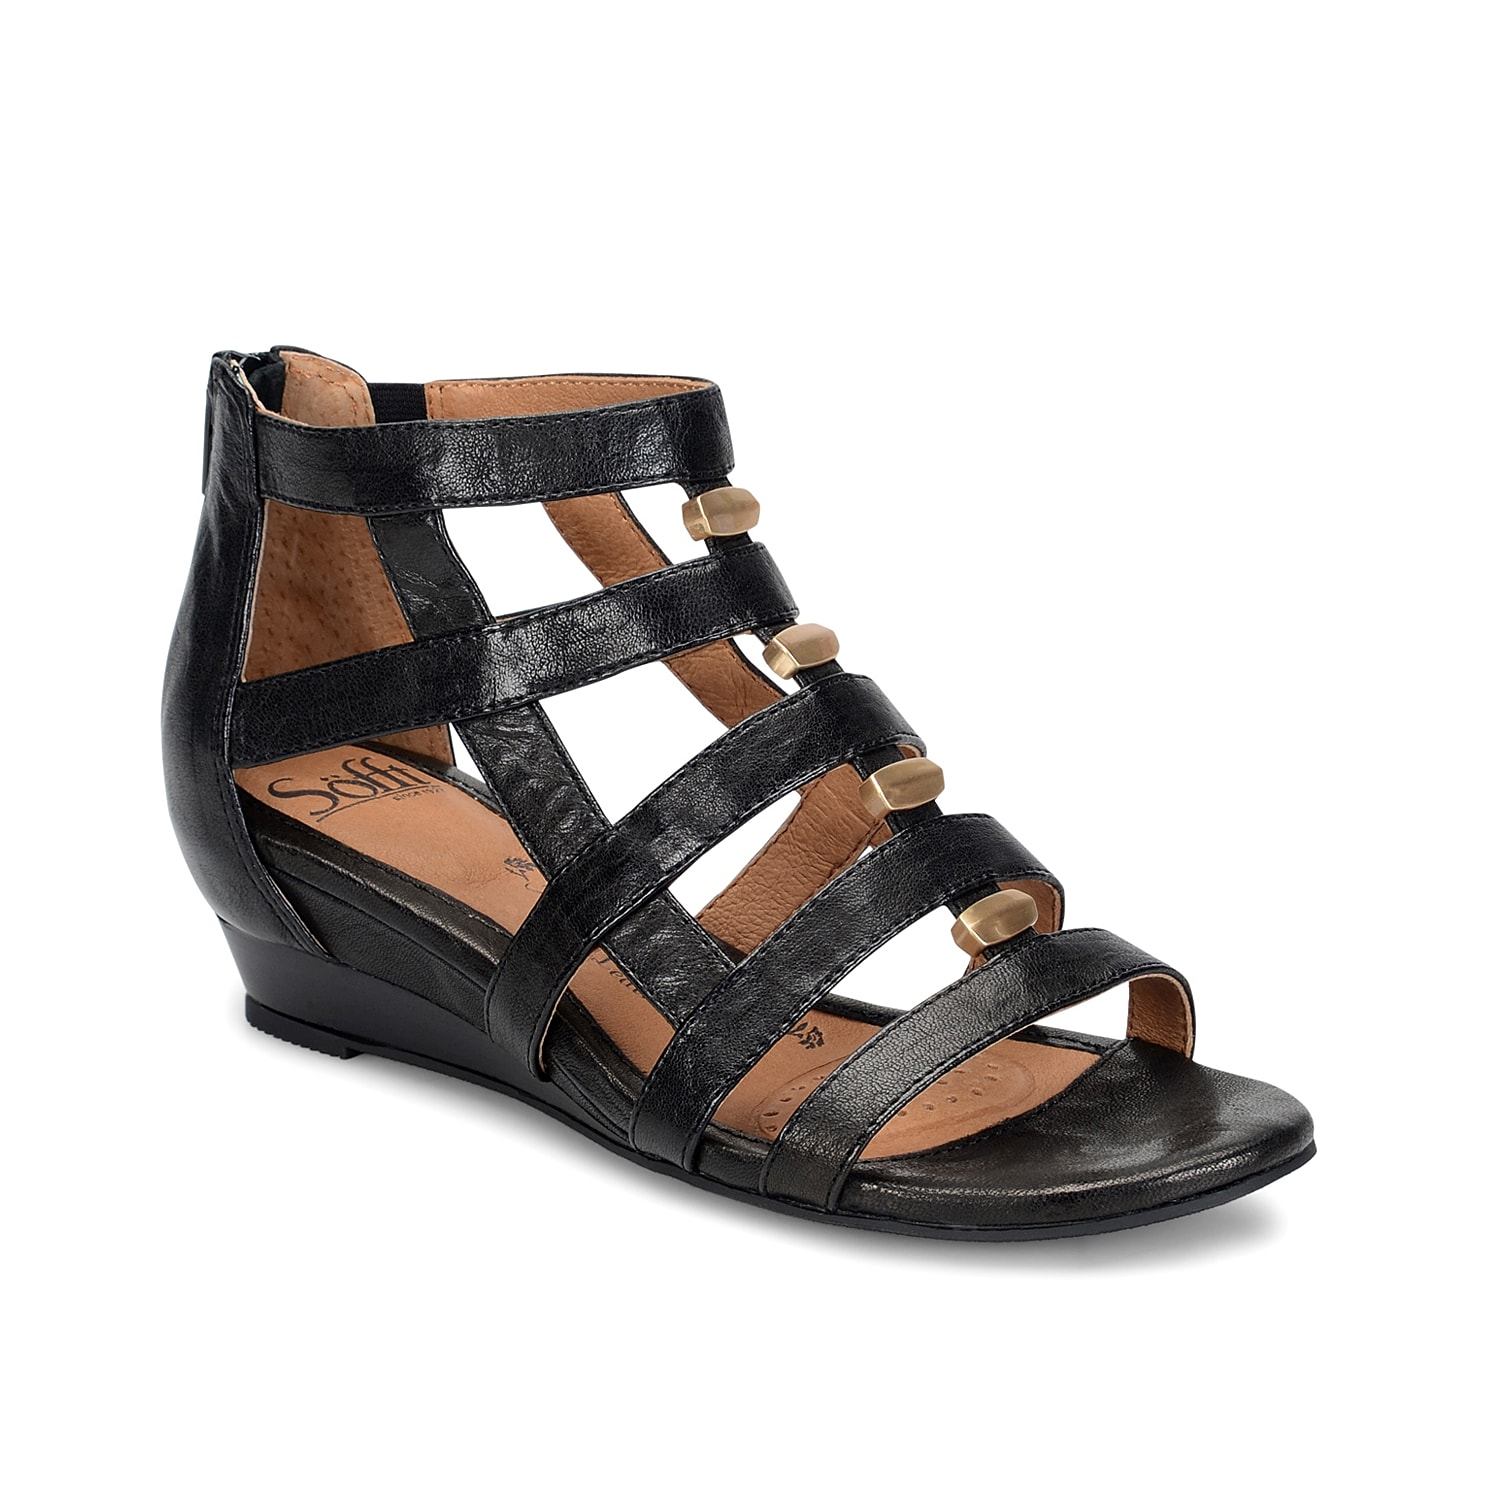 Searching for a comfortable wedge sandal to take you into the season in style? Sofft has you covered with the Rio gladiator sandal. Classic and versatile, these strappy sandals are a must-have addition to your casual summer wardrobe.